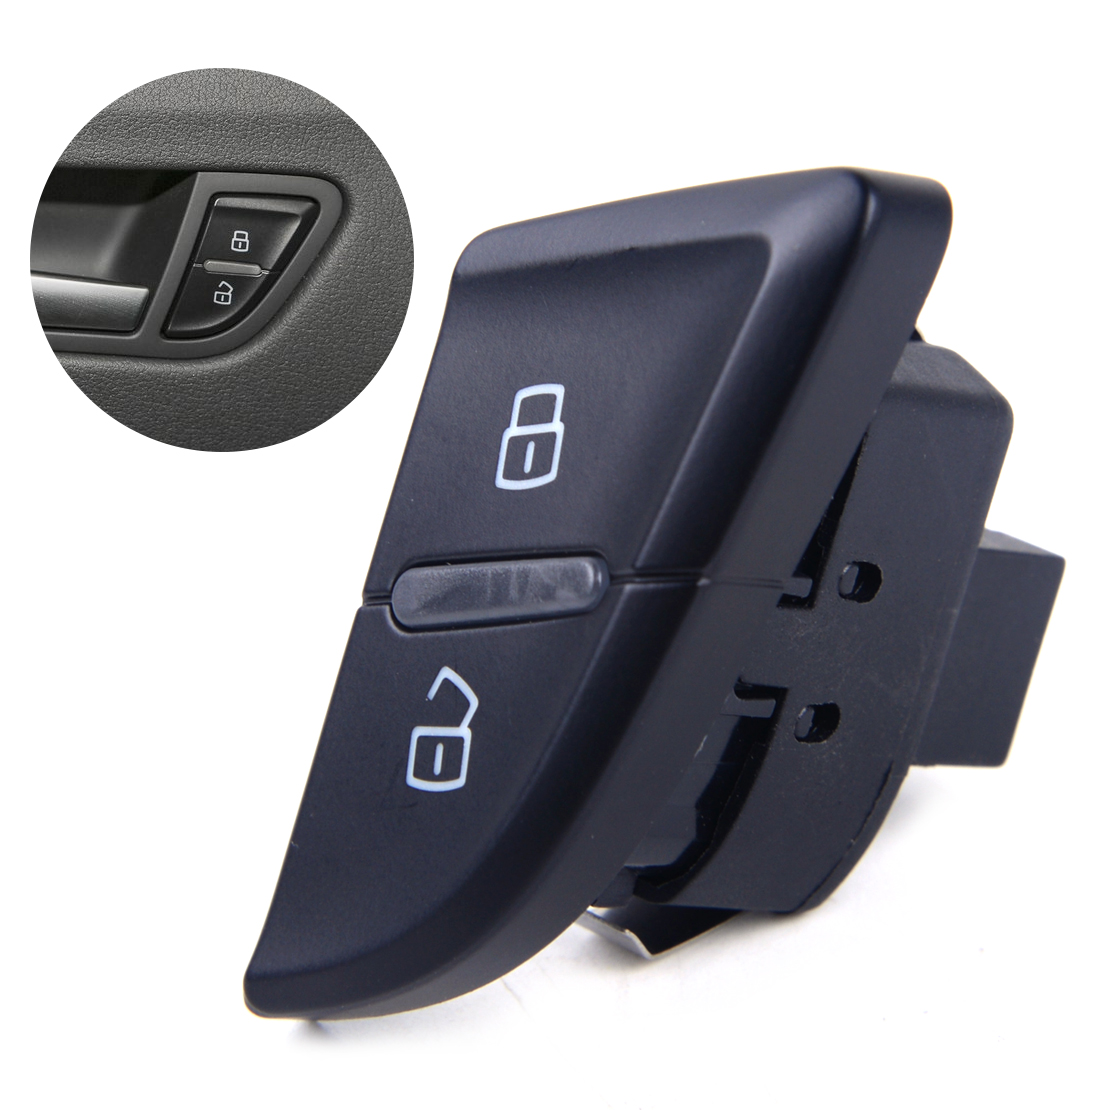 Intellective Beler Car Left Driver Side Front Door Central Lock Unlock Control Switch 8k1962107 Fit For Audi A4 S4 A5 2013 2014 Auto Fastener & Clip